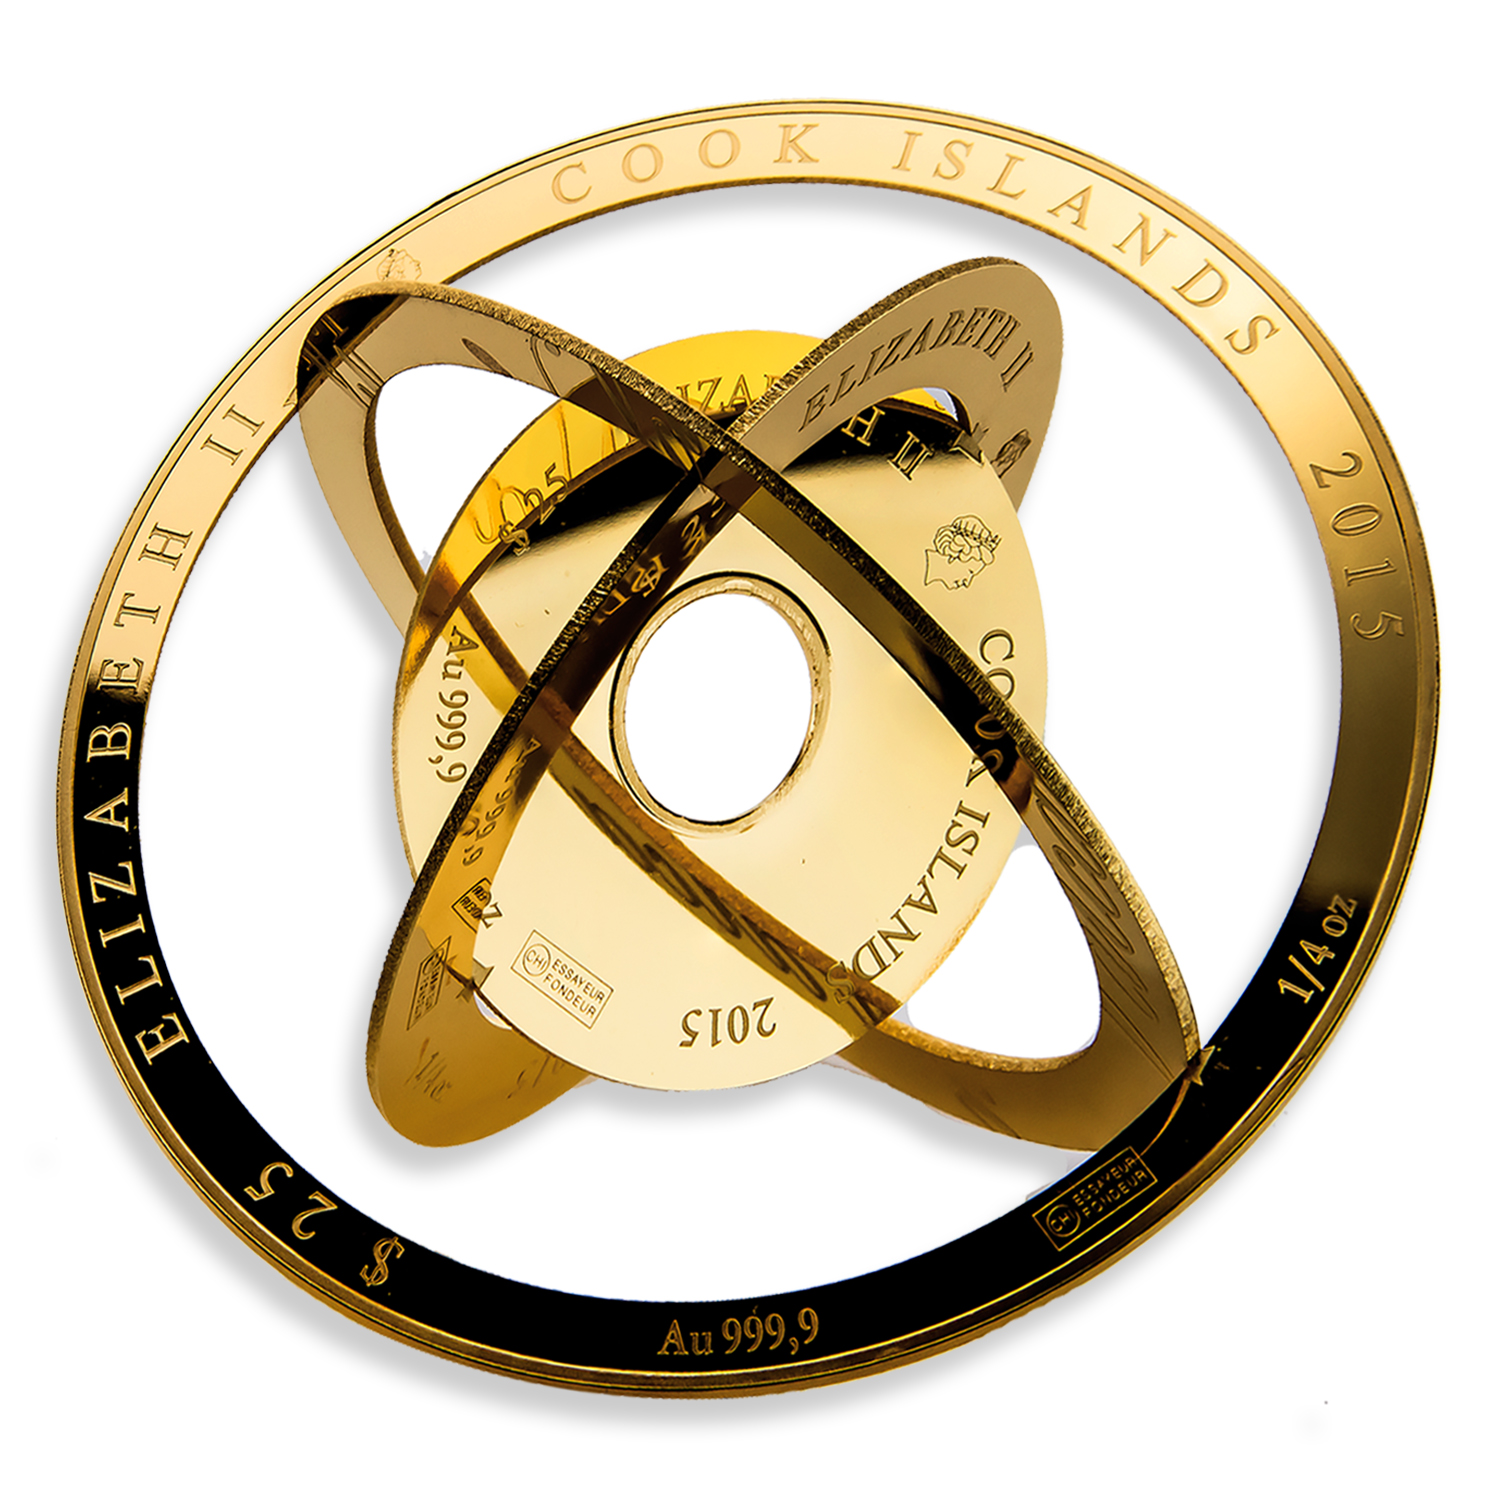 2015 1 oz Cook Islands $100 Gold Armillary Coin Valcambi